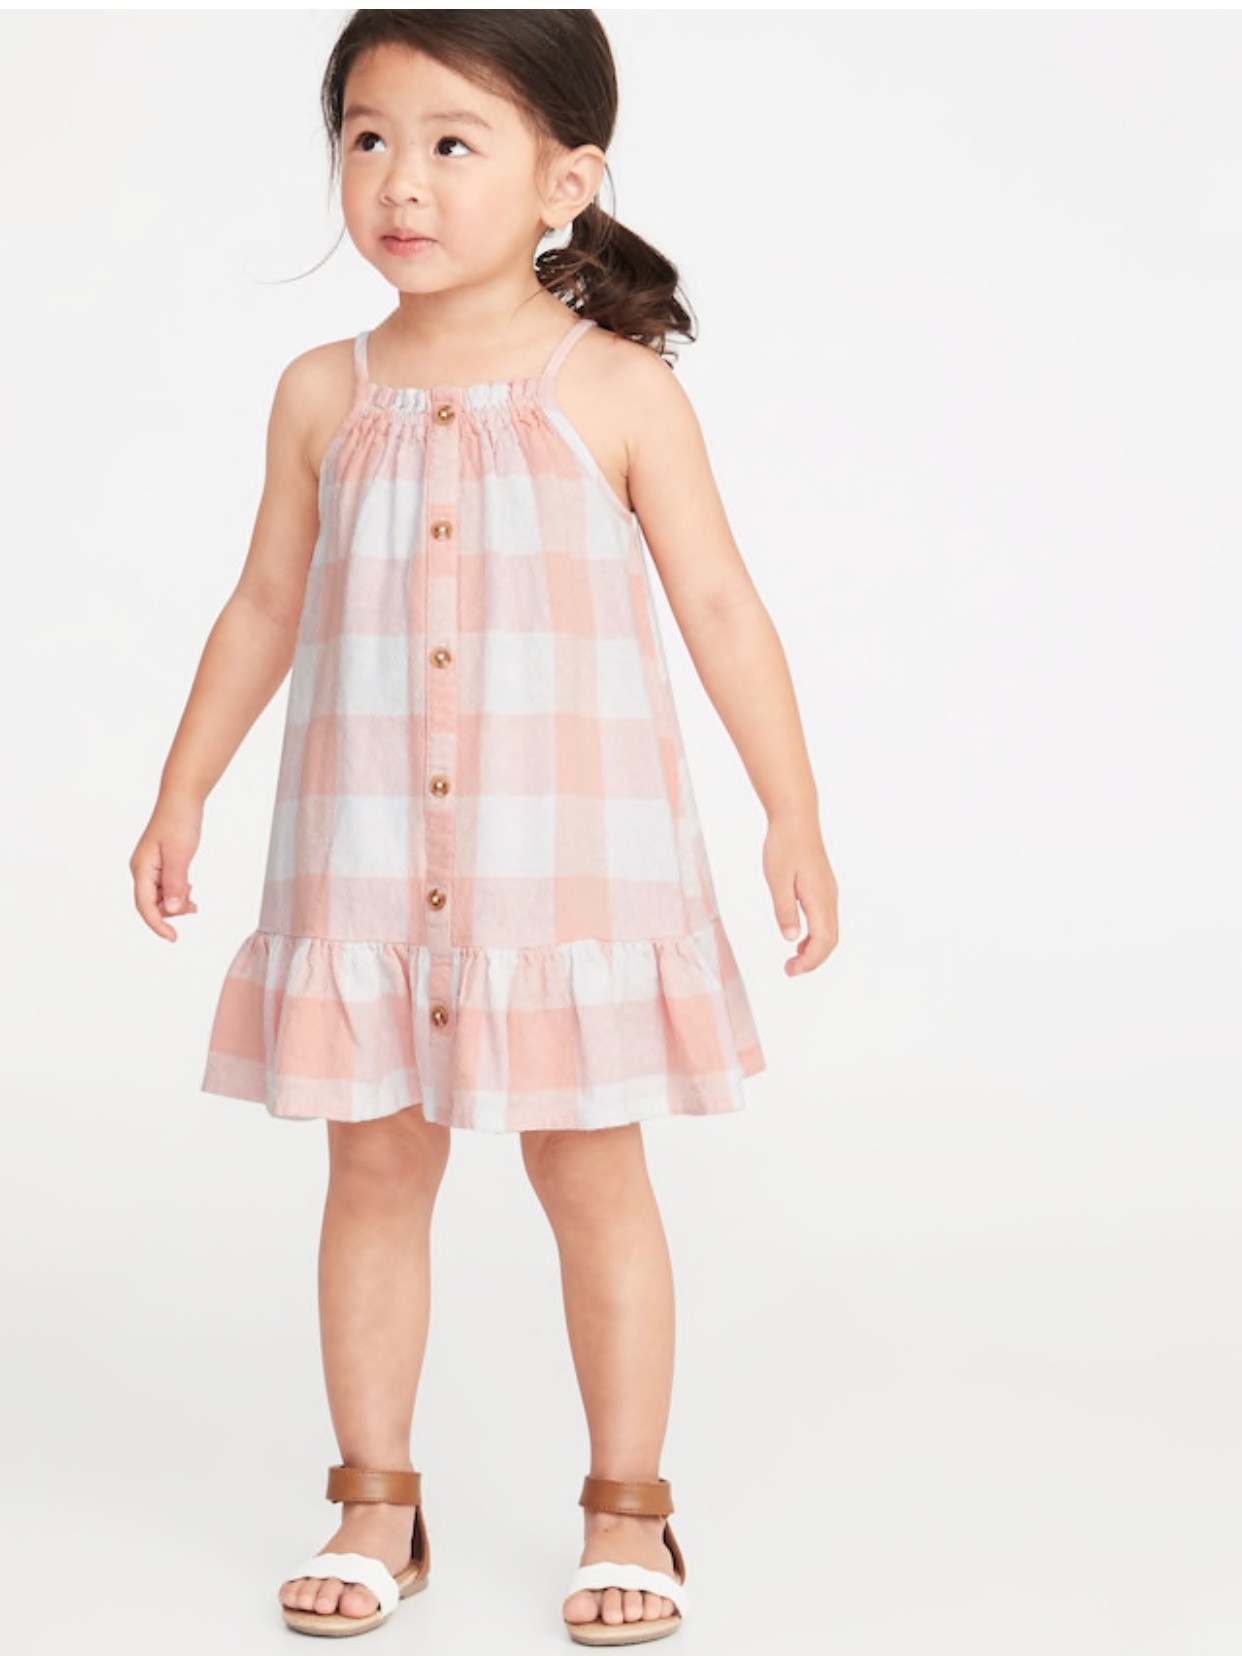 - Caroline will be wearing this all spring and summer. It comes in 2 other patterns too. Gosh girl clothes are fun!Find it here.